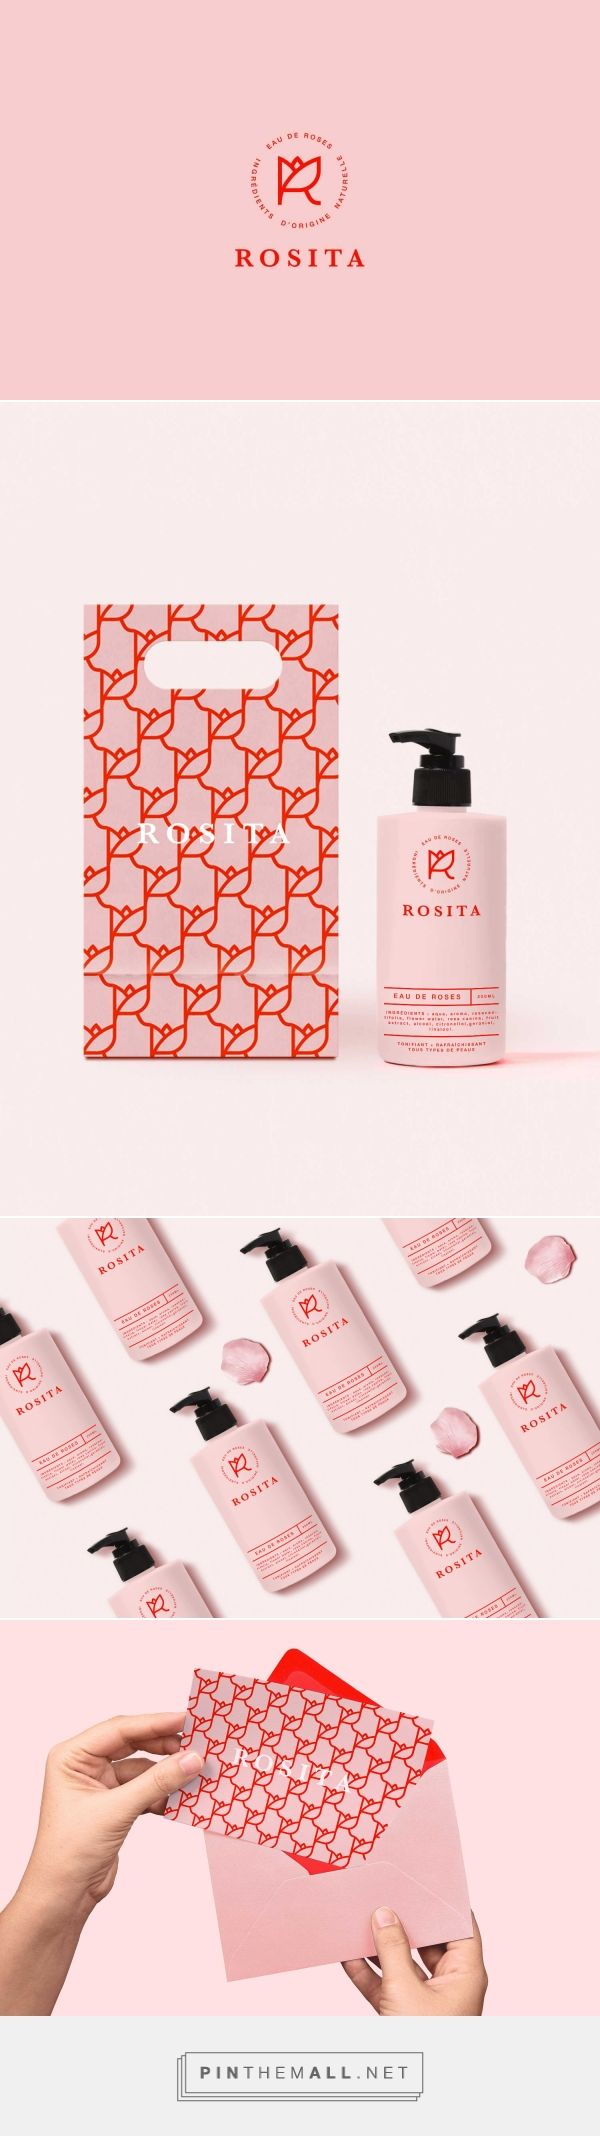 Rosita is a fictitious brand of rose water. Designed by JOAM